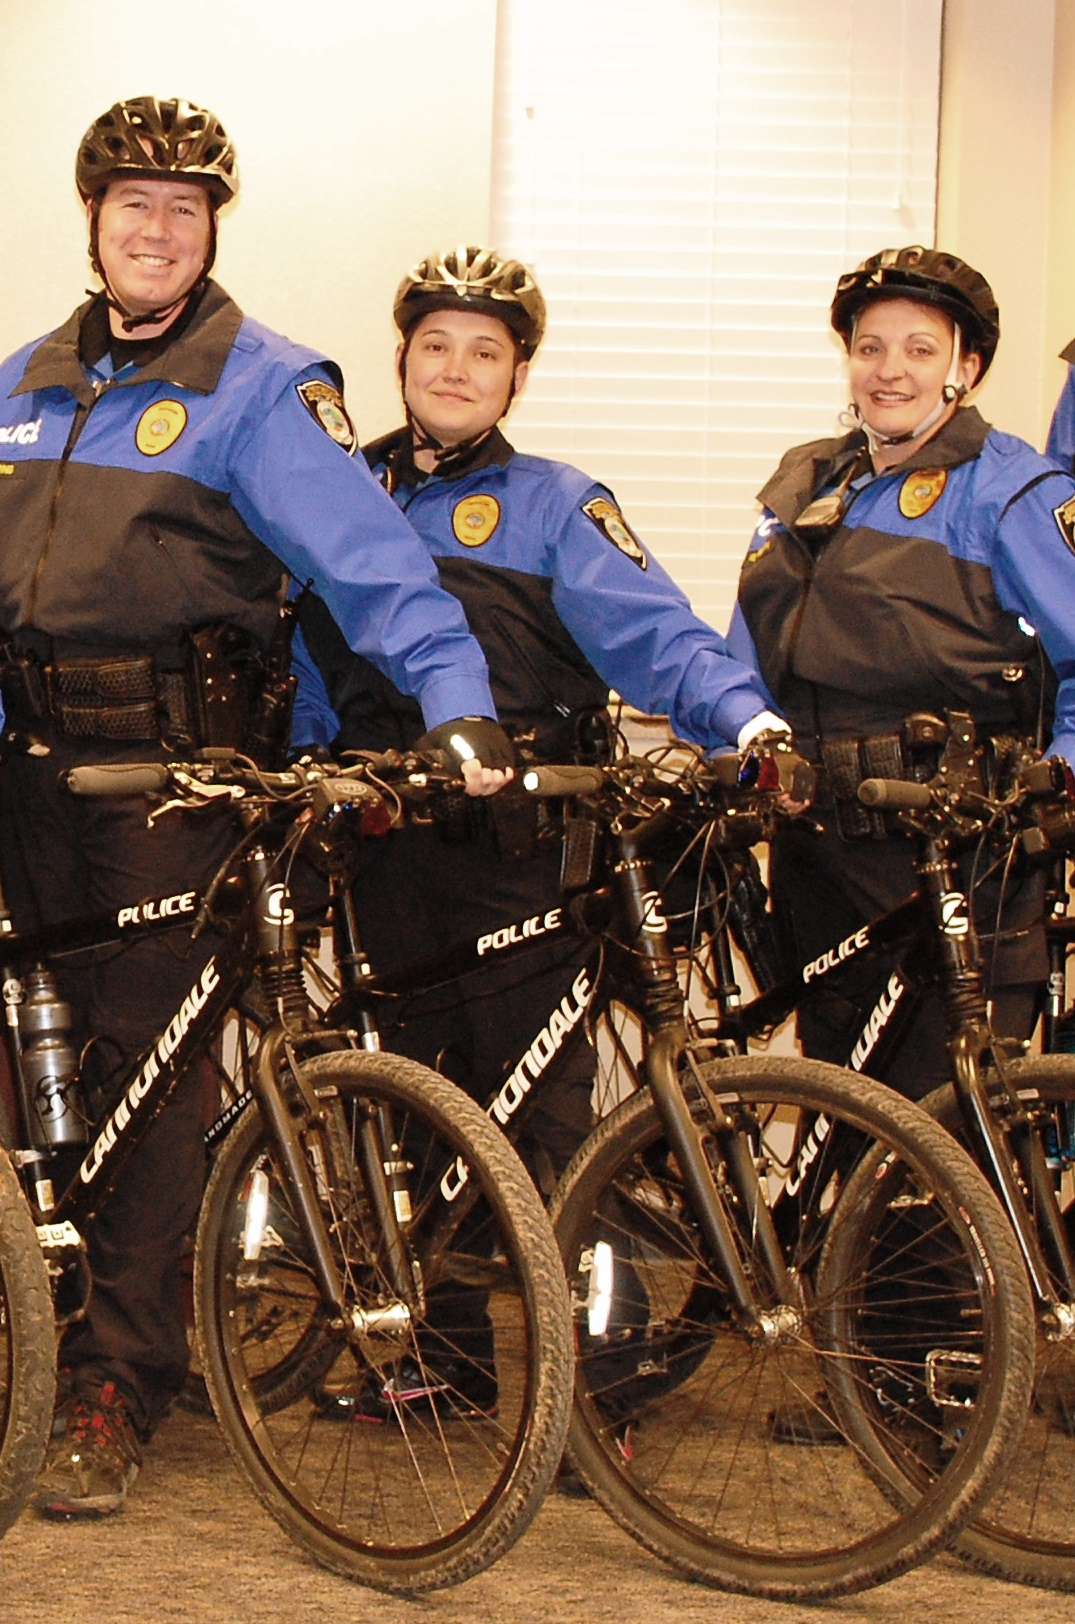 Photo of Bicycle Patrol Officers with Bikes